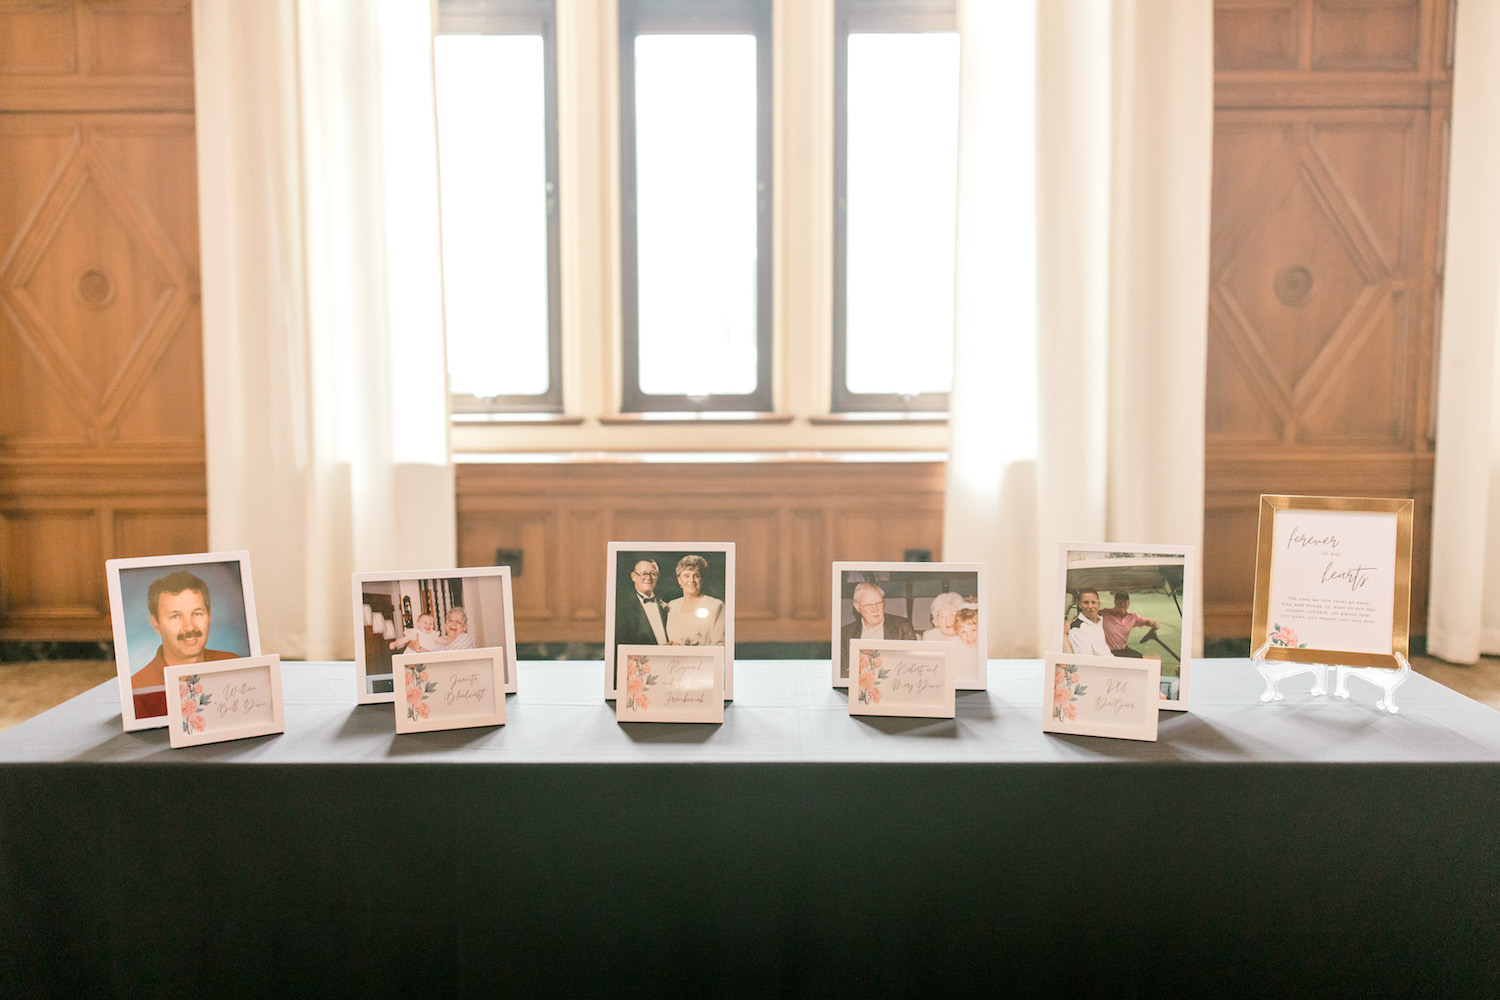 Photos of loved ones on table